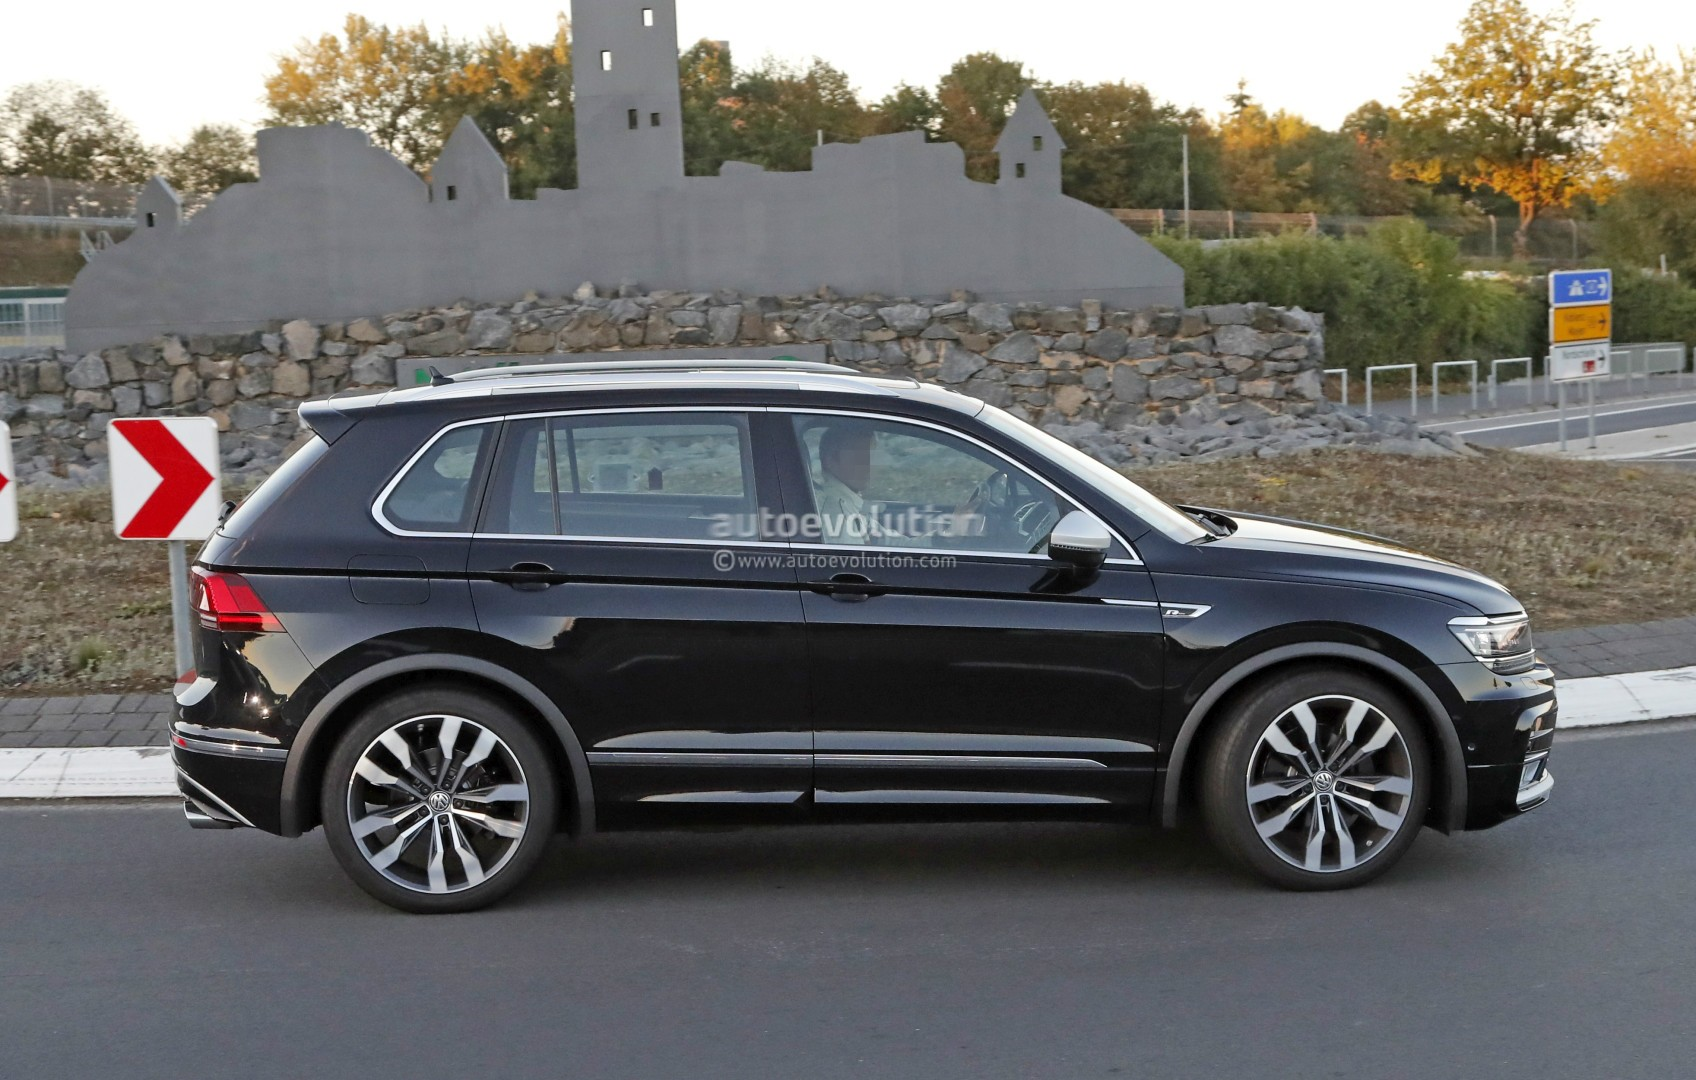 2018 Volkswagen Tiguan R Spotted At Nurburgring Not